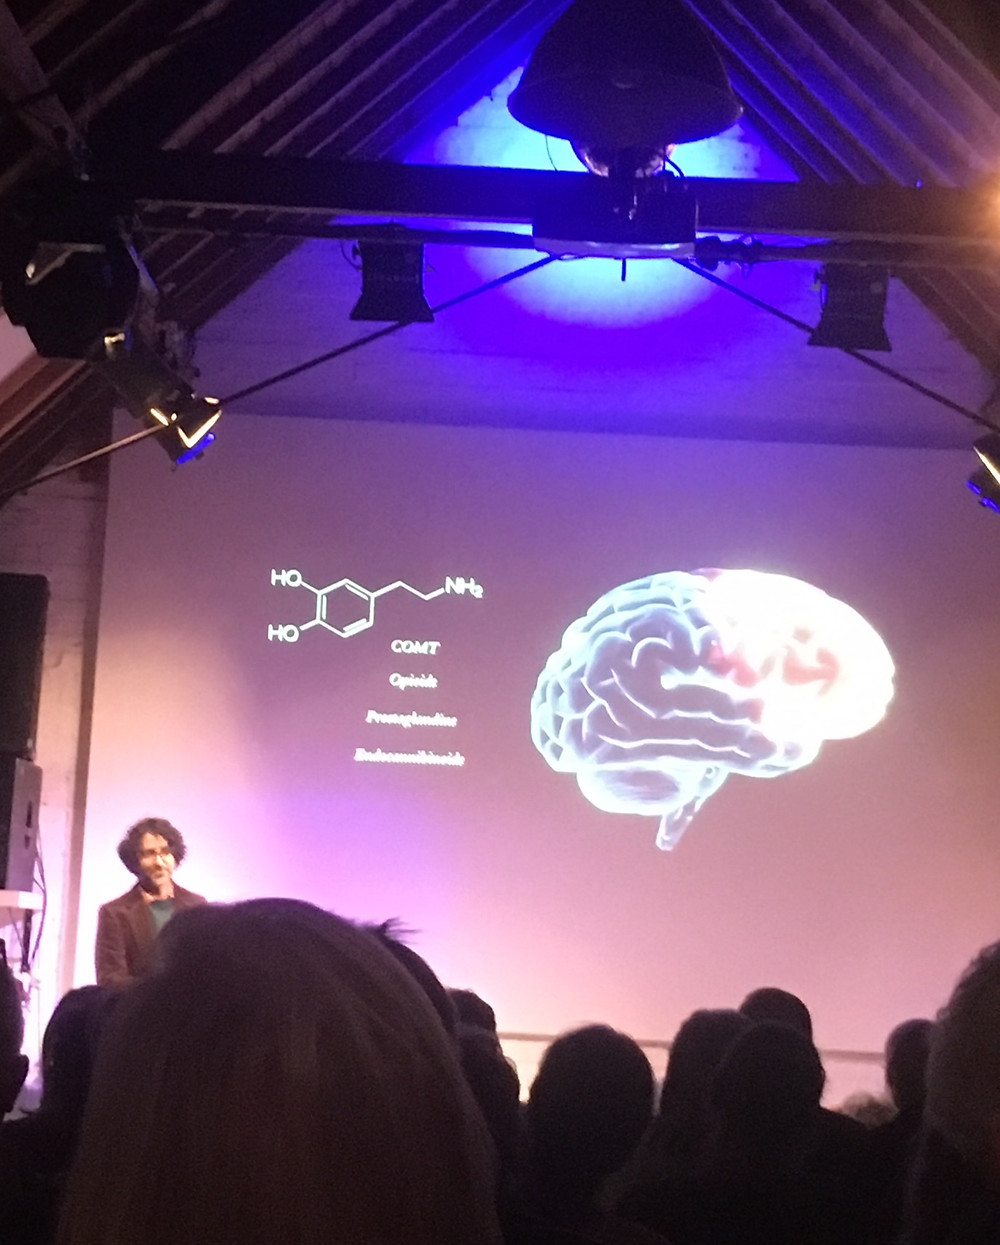 Dr Ash Ranpura speaking about The Placebo Effect at Ebenezer Presents in Somerset